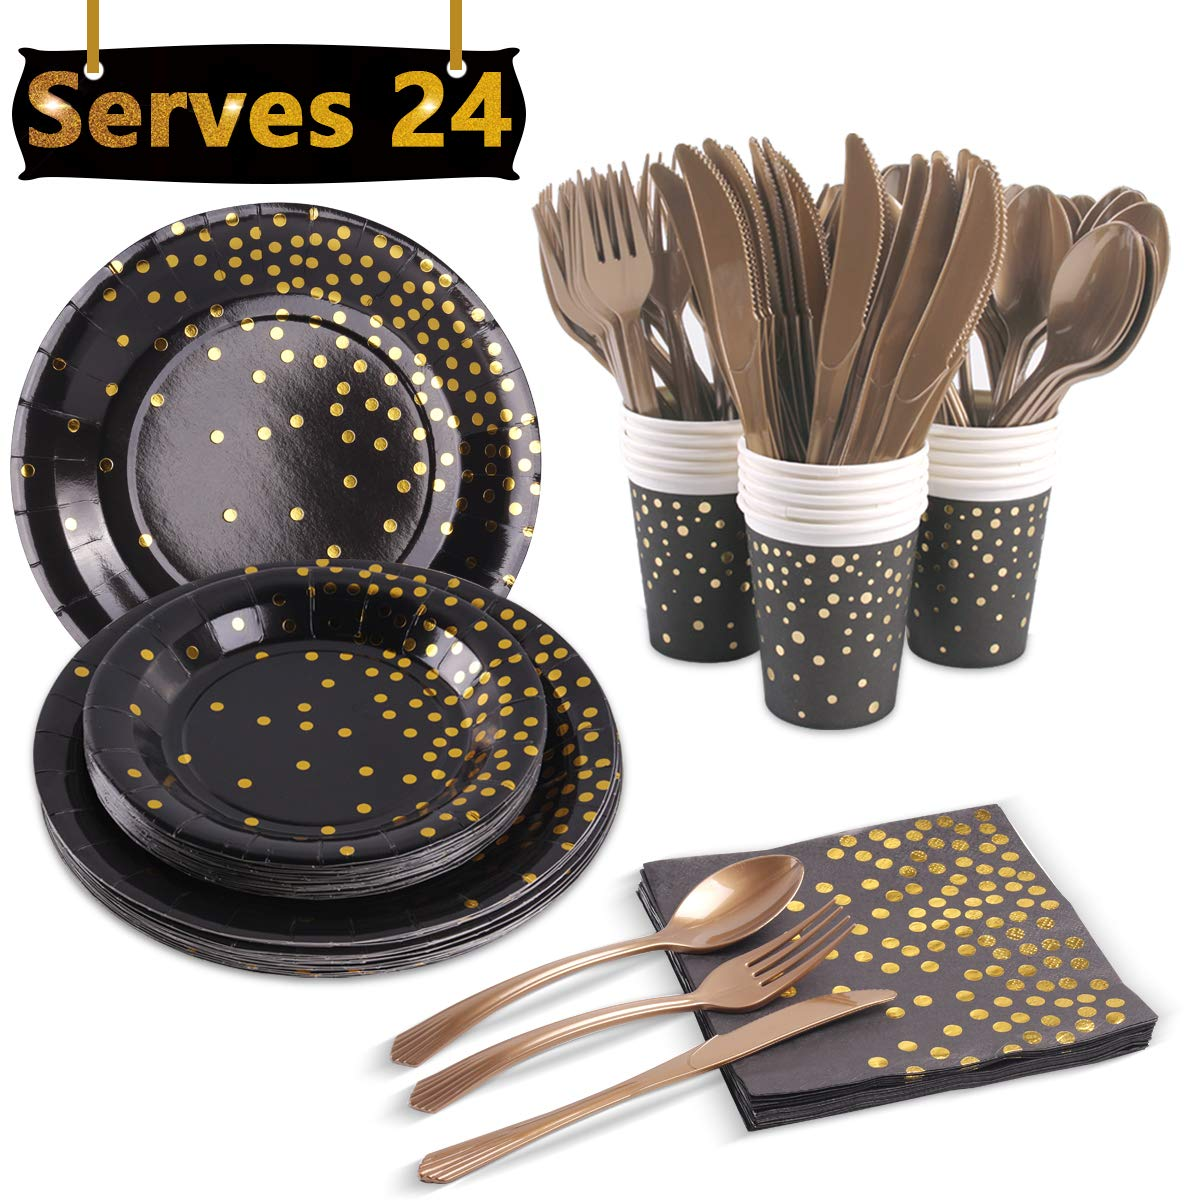 Black and Gold Party Supplies, Serves 24 - Gold Foiled Polka Dot Disposable Dinnerware Set for Graduation, Birthday, Anniversary, Bachelorette Party by Staraise